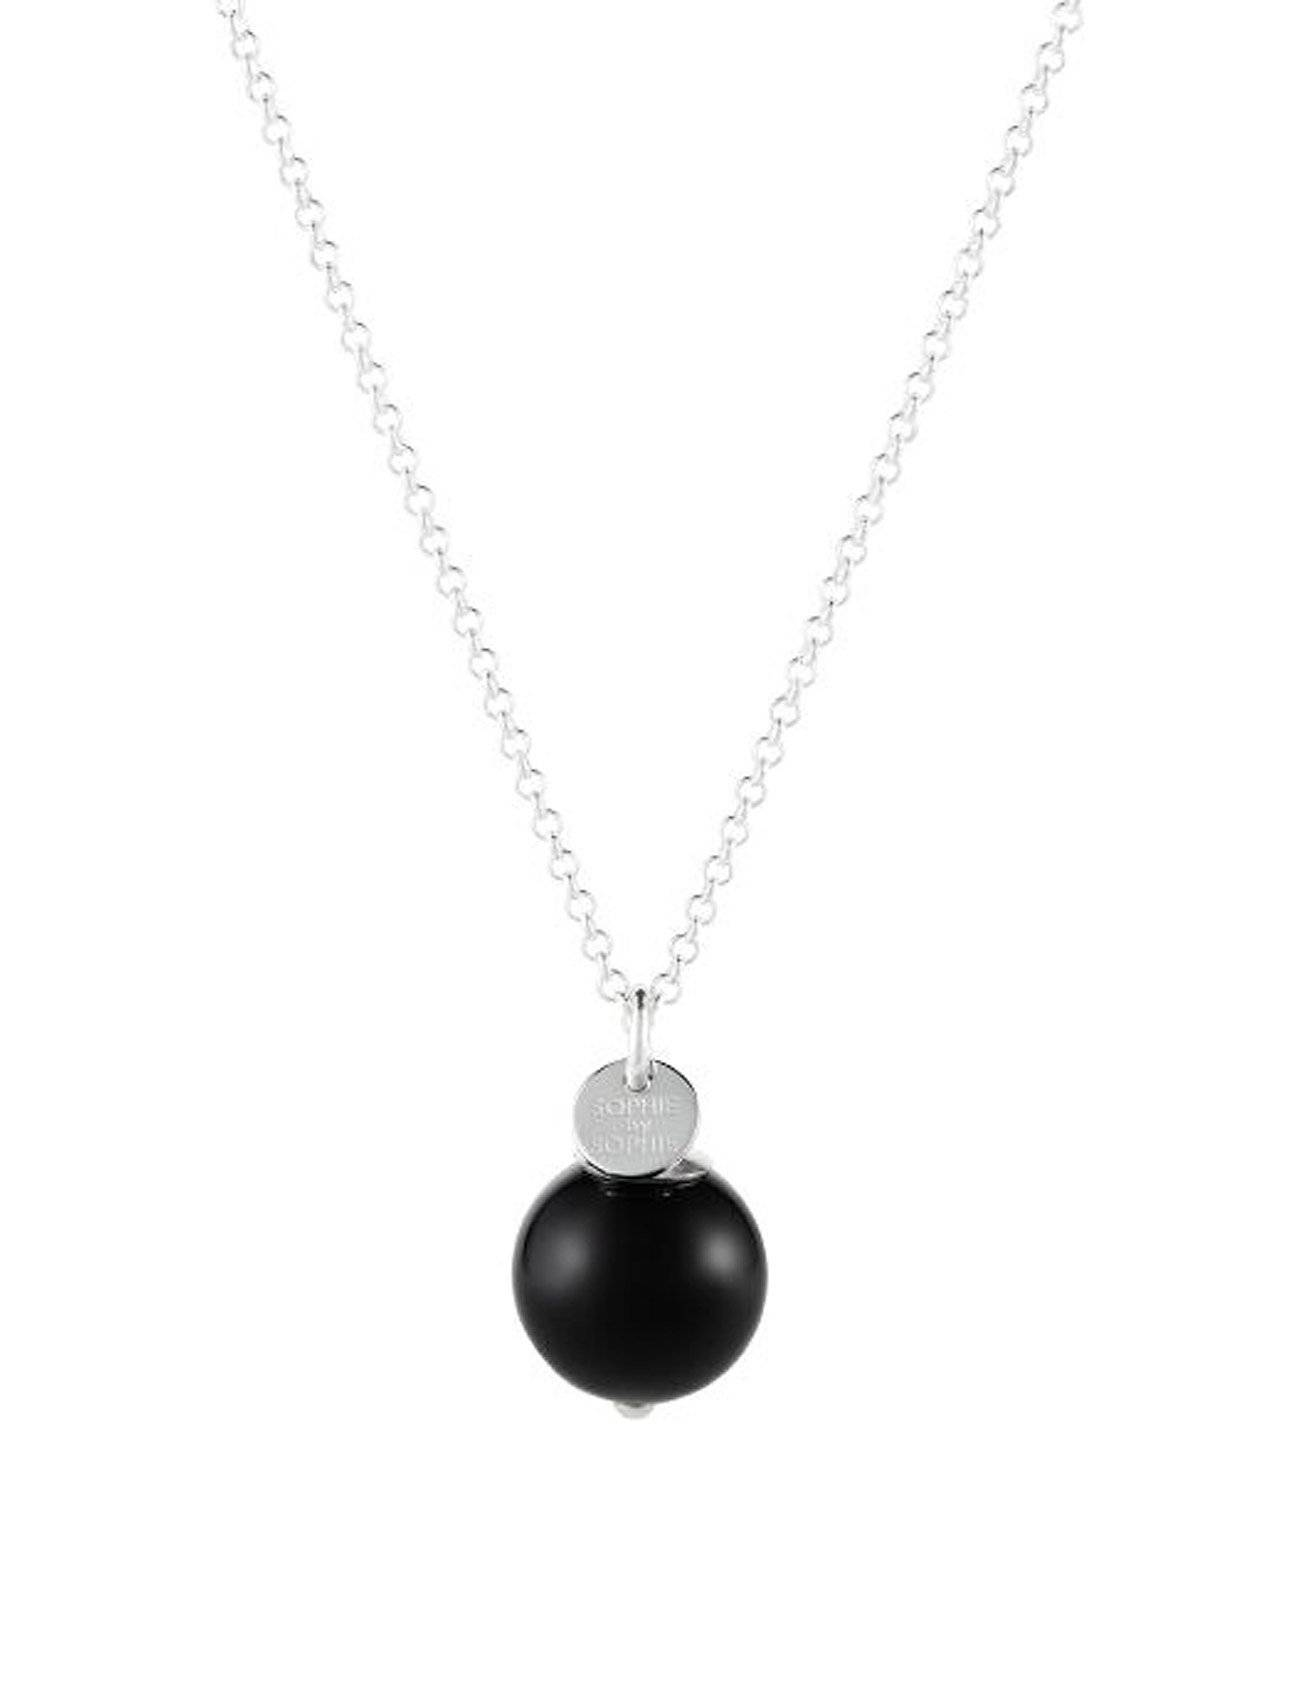 SOPHIE by SOPHIE Mini Globe Necklace